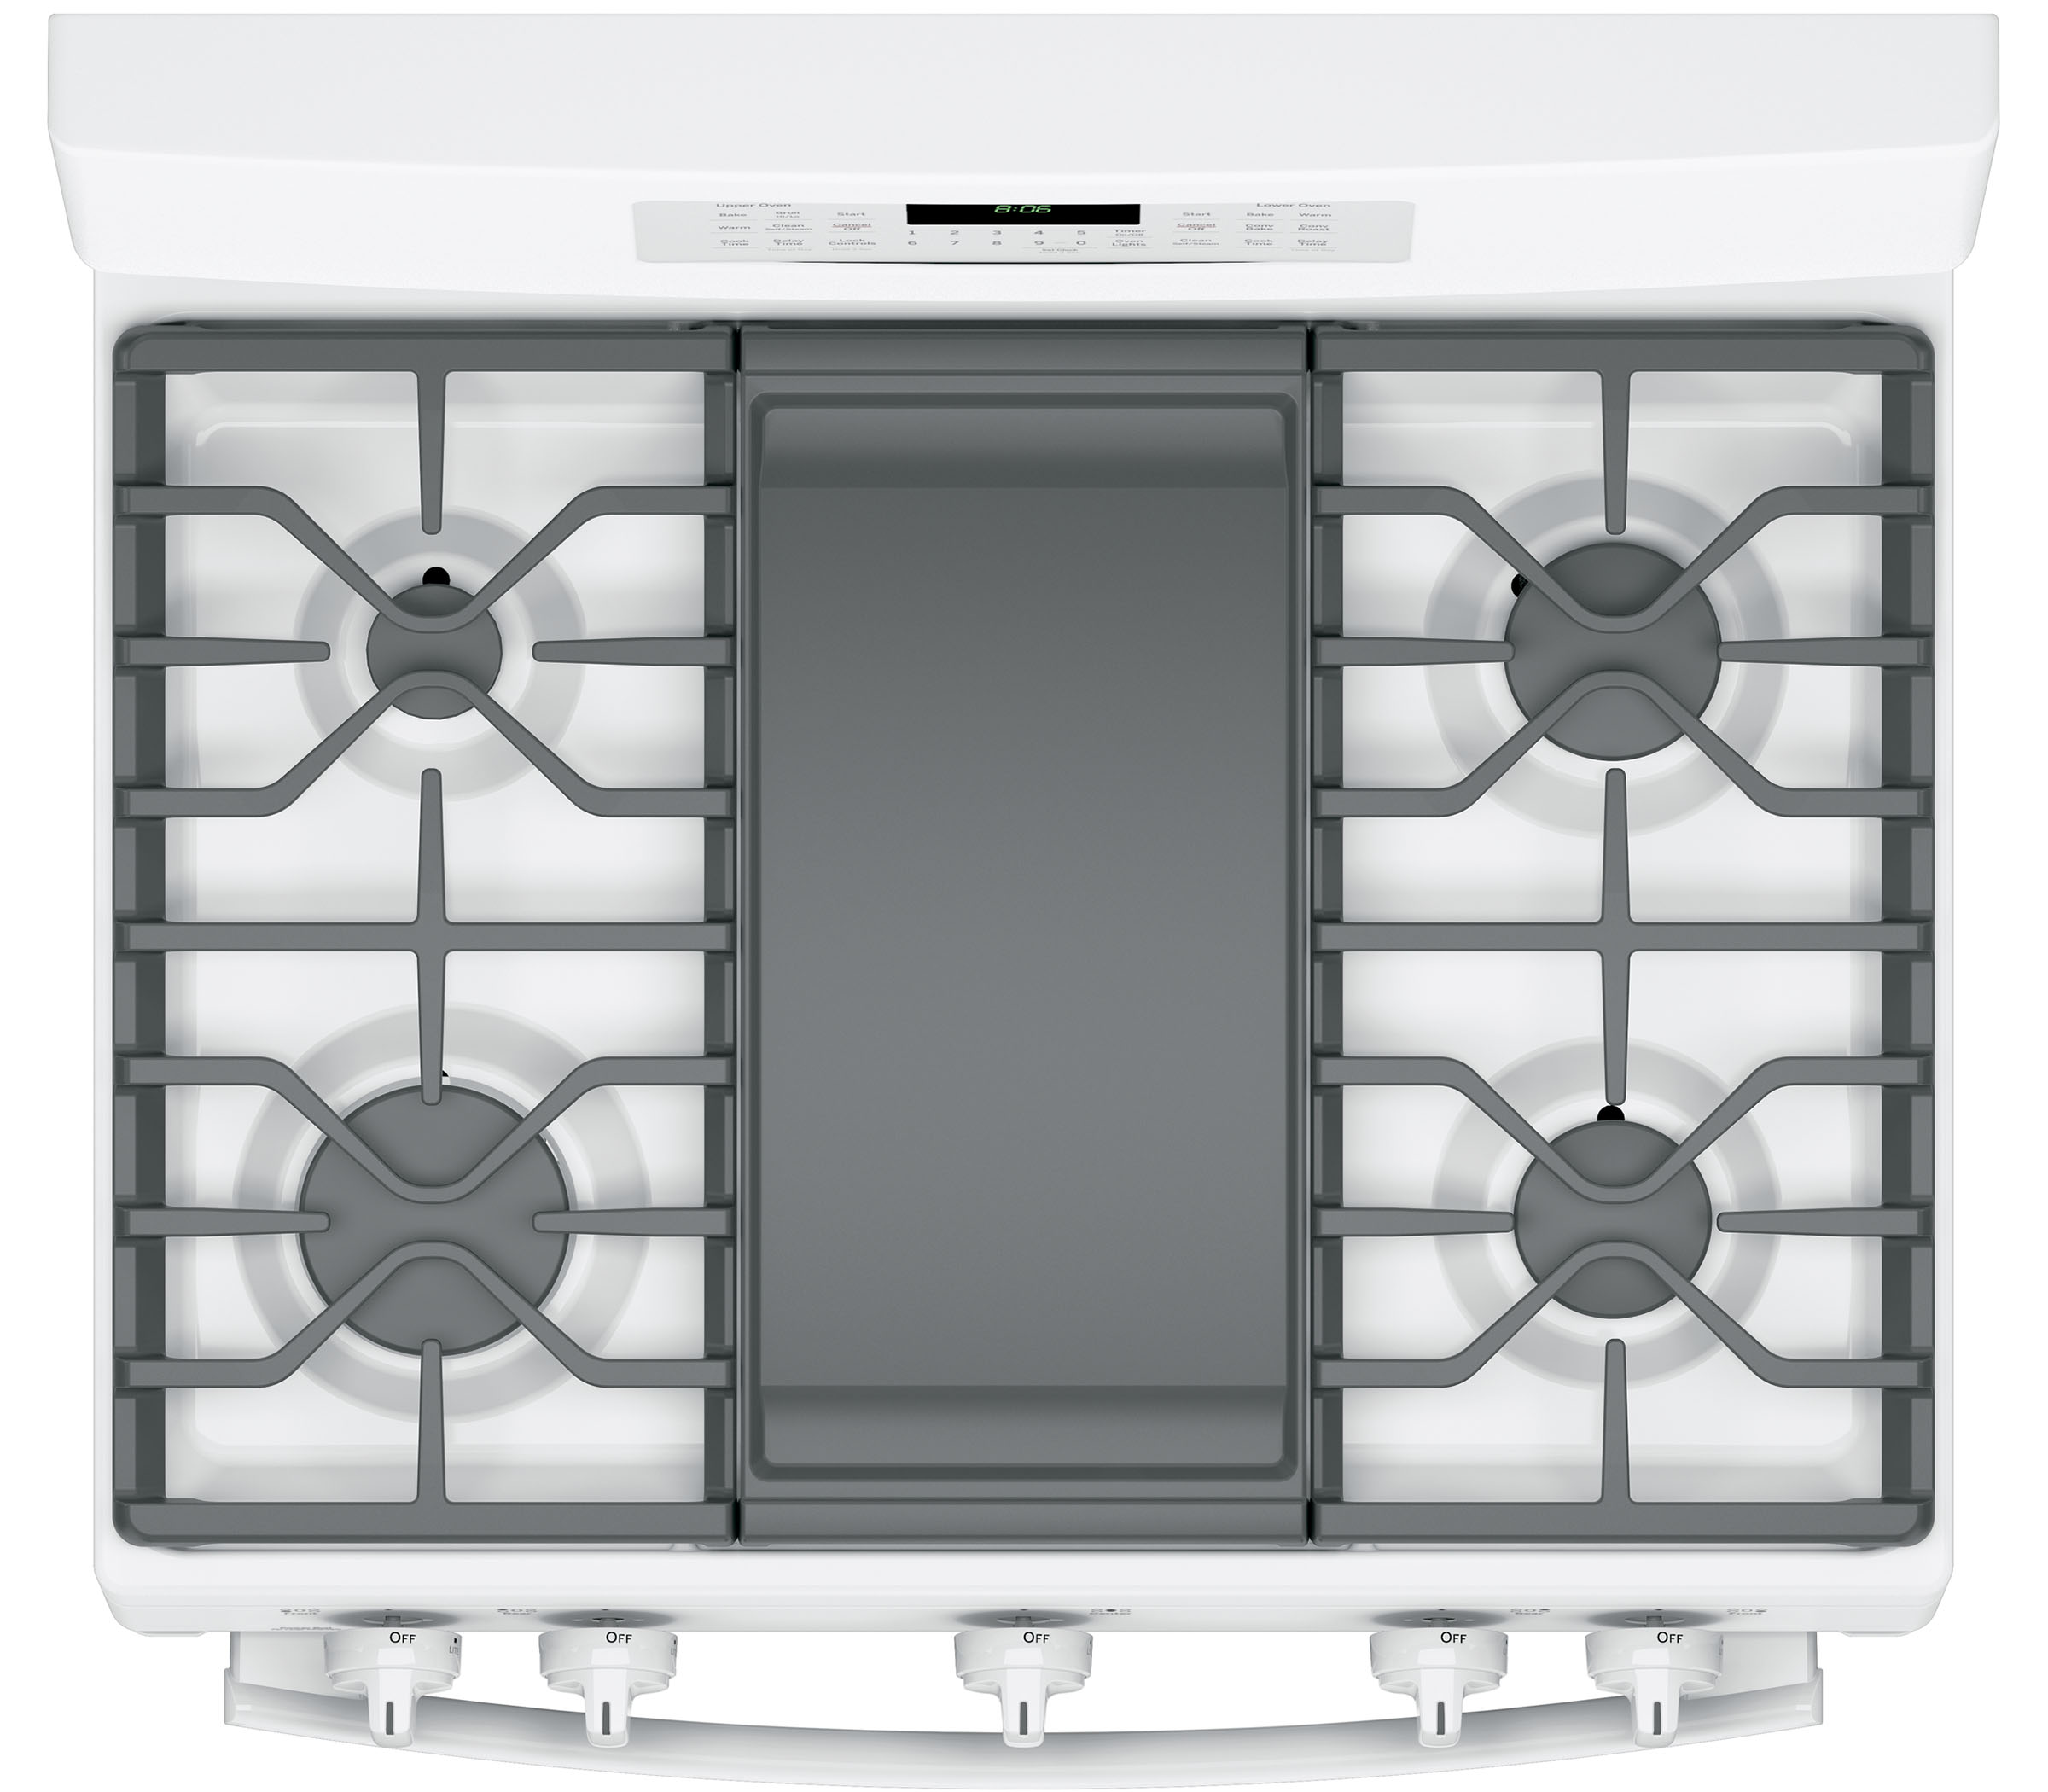 GE Appliances JGB860DEJWW 6.8 cu. ft. Freestanding Gas Double Oven Convection Range - Stainless Steel - White